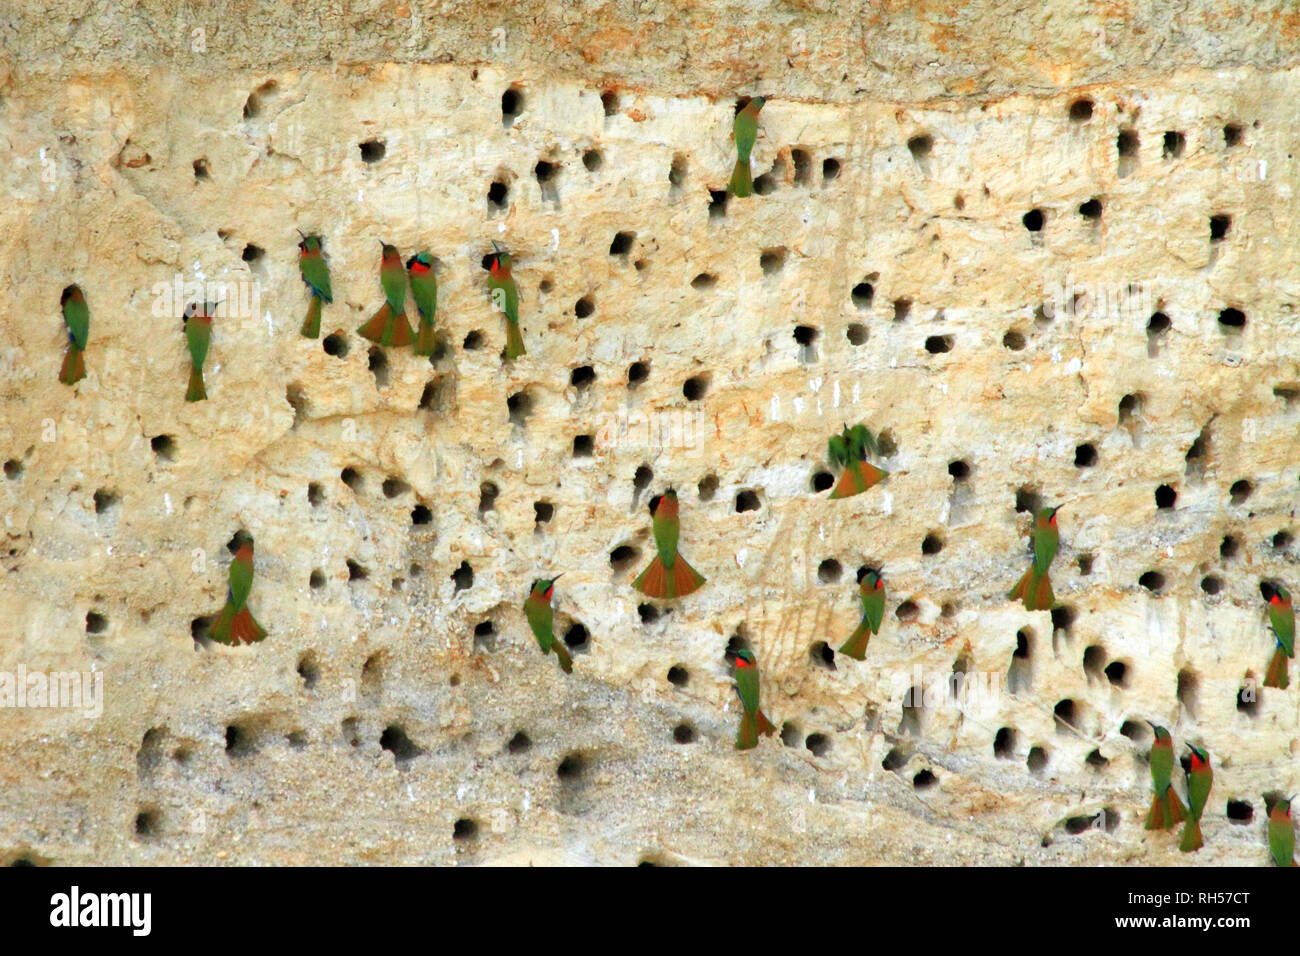 Bee-eaters nesting in holes made in a cliff side along the River Nile in Uganda - Stock Image